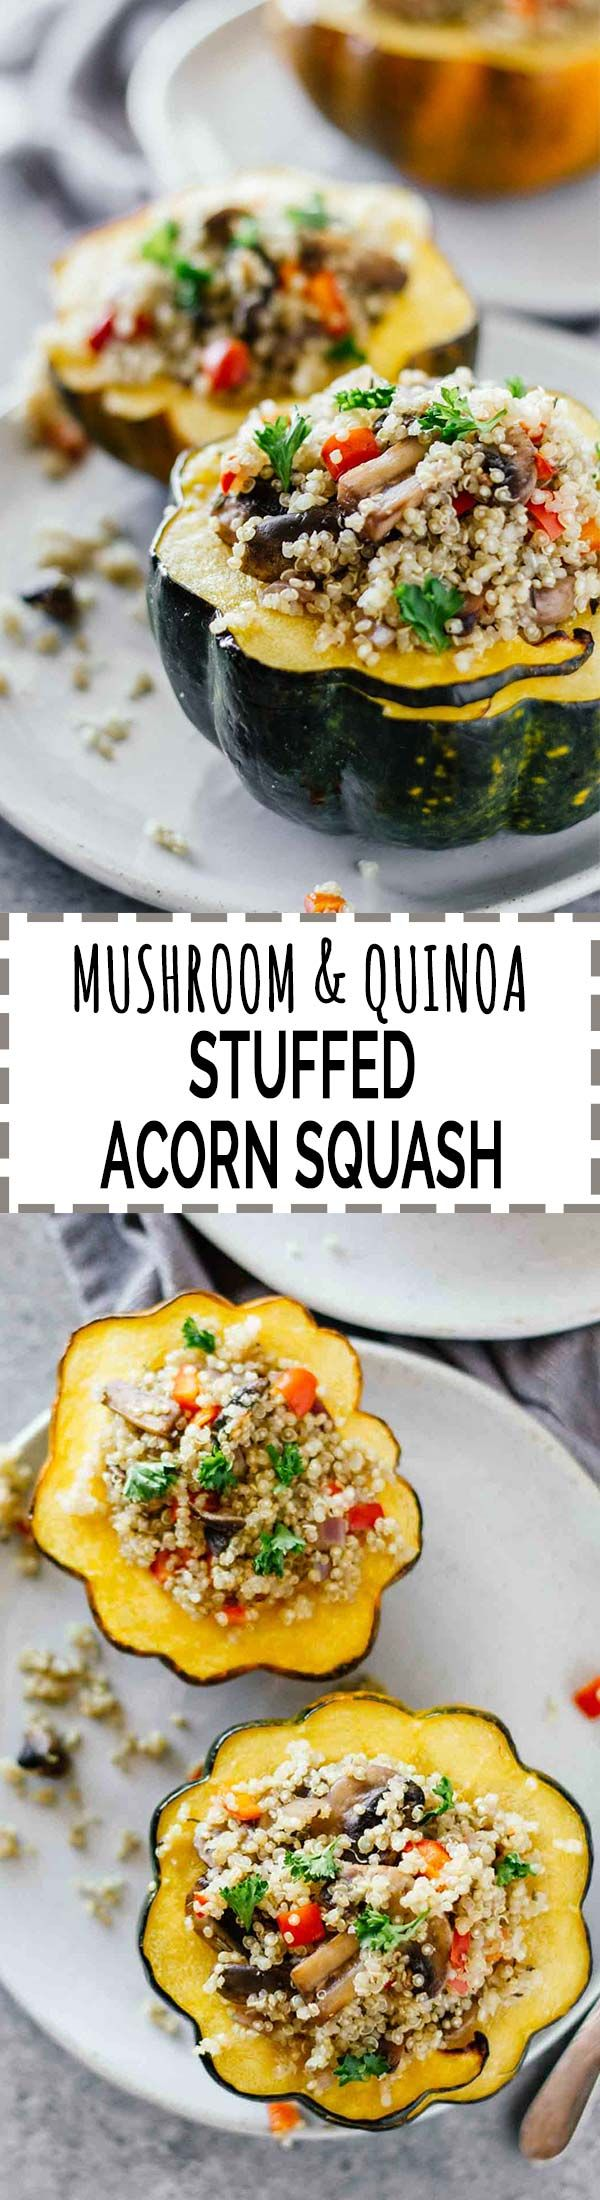 Mushroom & Quinoa Stuffed Acorn Squash! Vegan, vegetarian, gluten-free, and super easy to make!